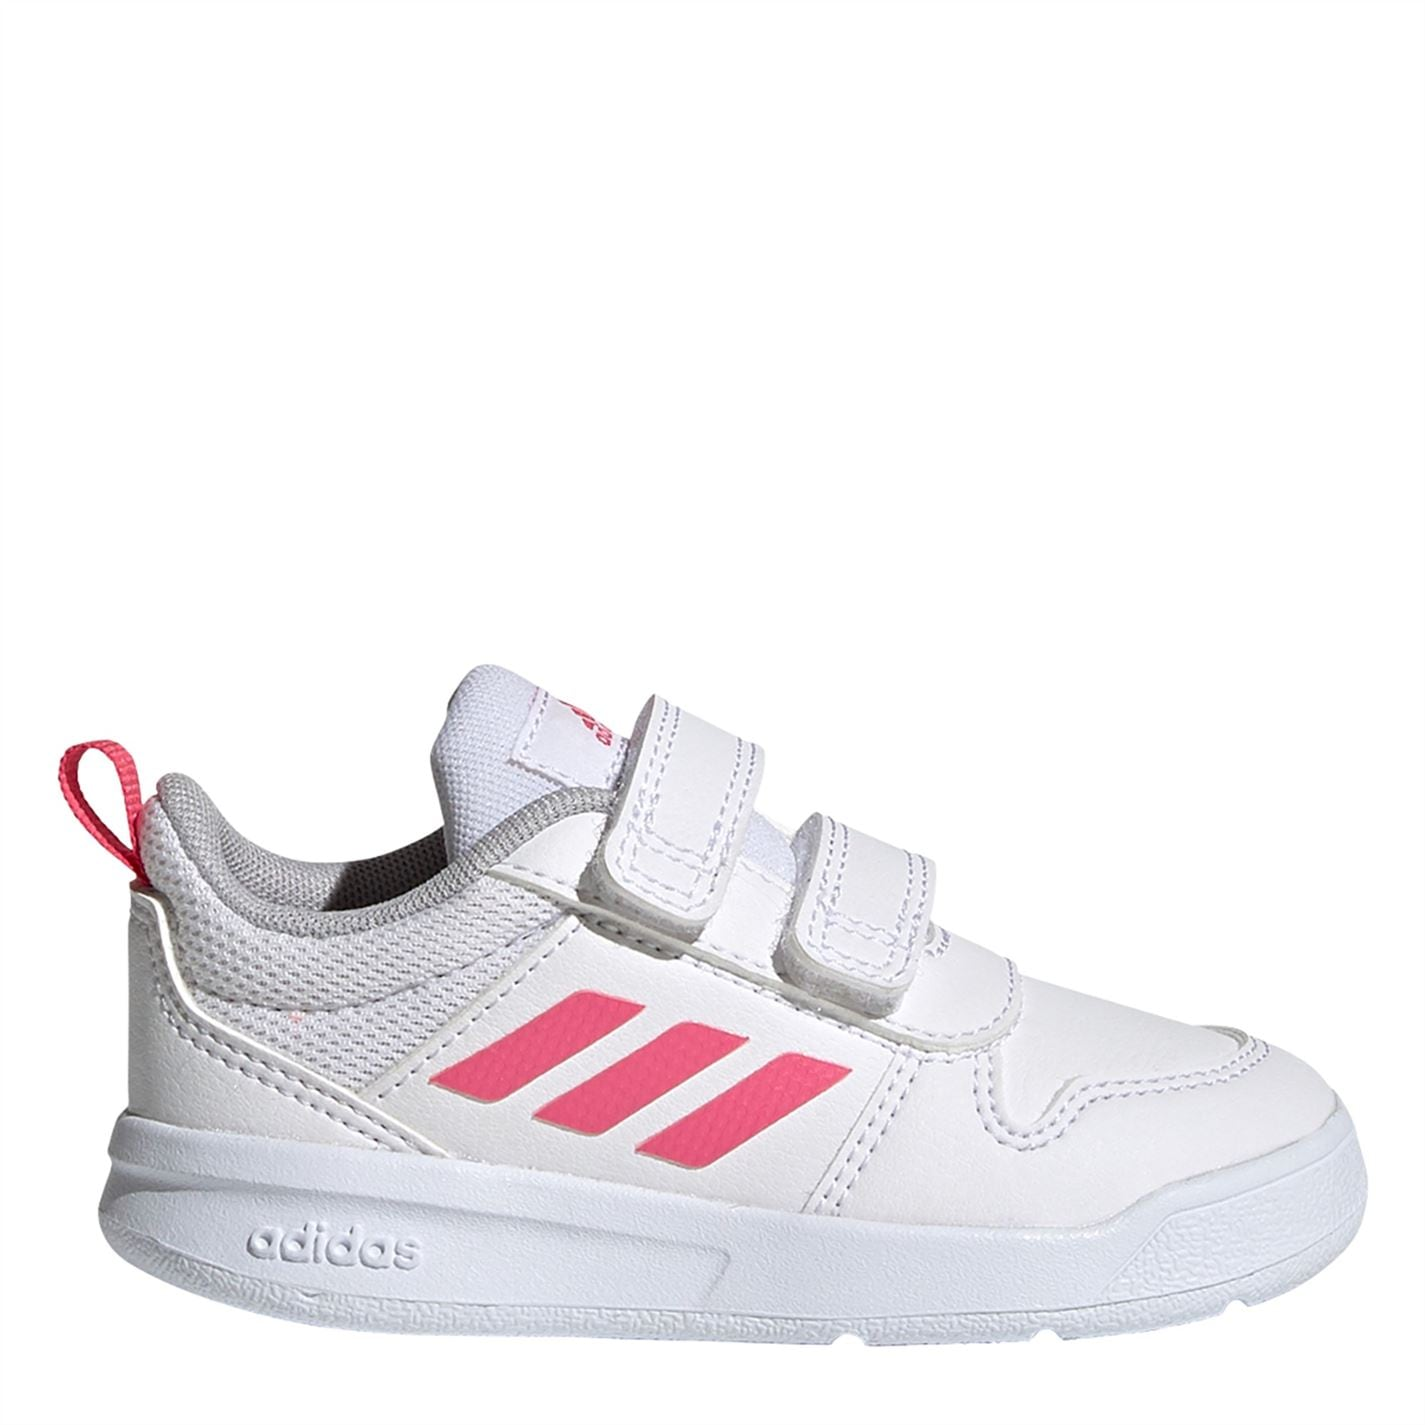 adidas Tensaur 2 Infant Girls Trainers White/Pink